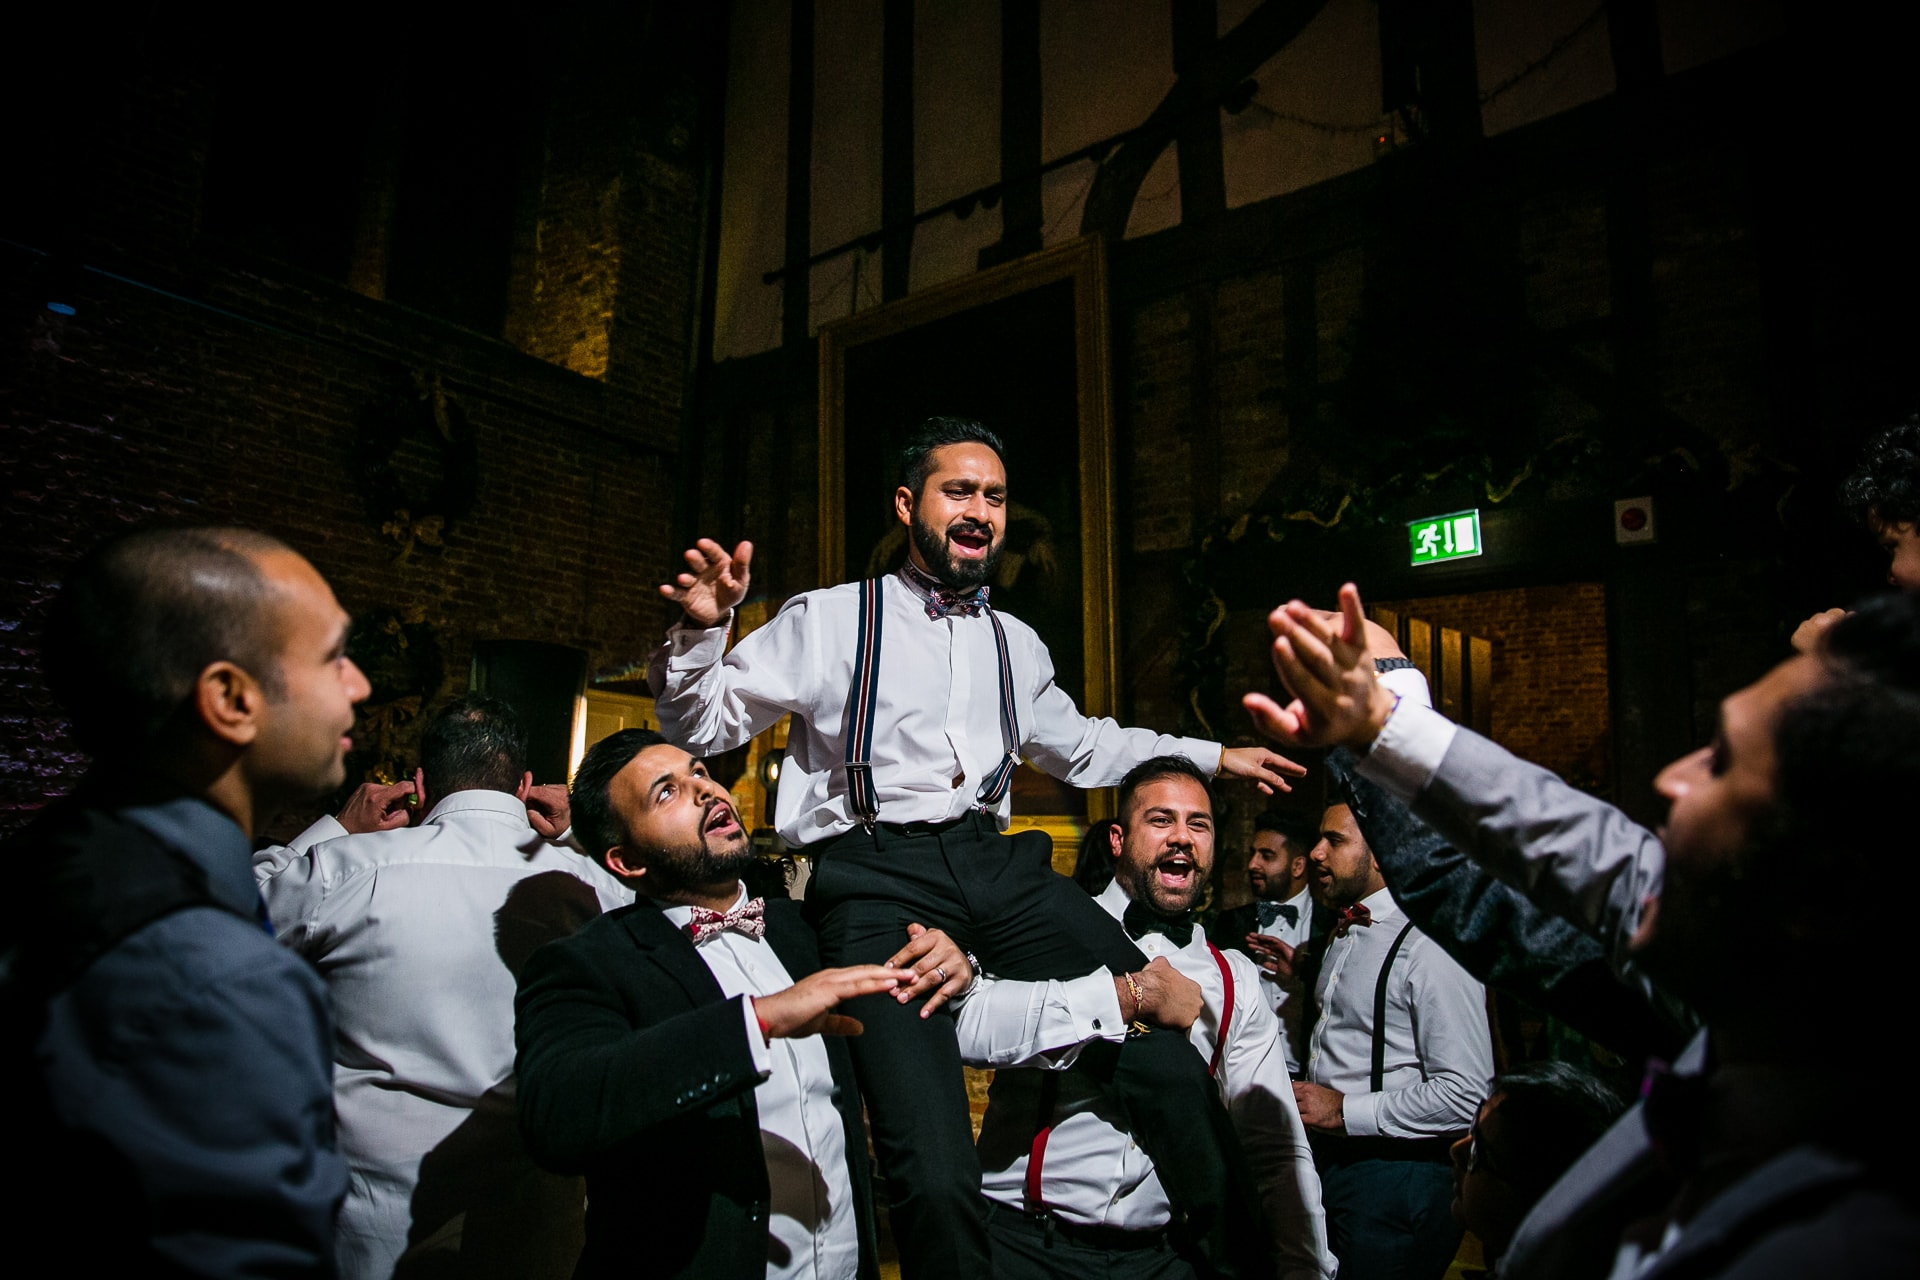 Asian wedding reception party at Hatfield House